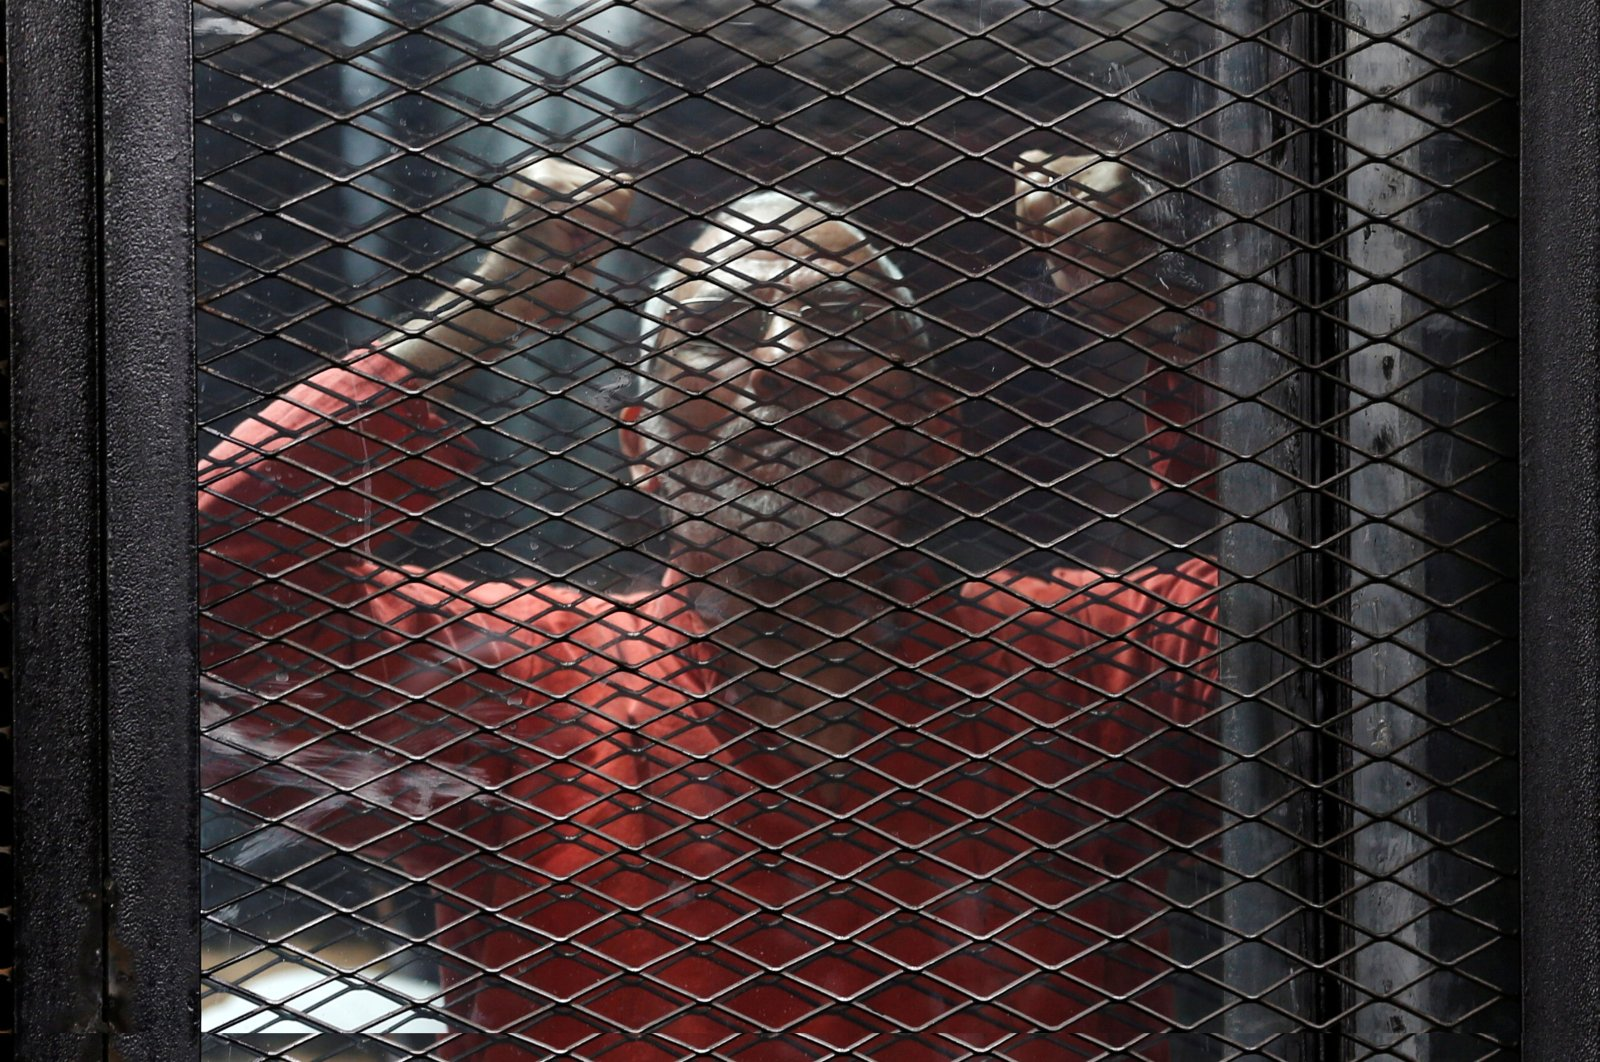 Muslim Brotherhood leader Mohamed Badie shouts slogans against the Interior Ministry behind bars during the trial of 738 Brotherhood members for their armed sit-in at Rabaa square, at a court on the outskirts of Cairo, Egypt, May 31, 2016. (Reuters File Photo)